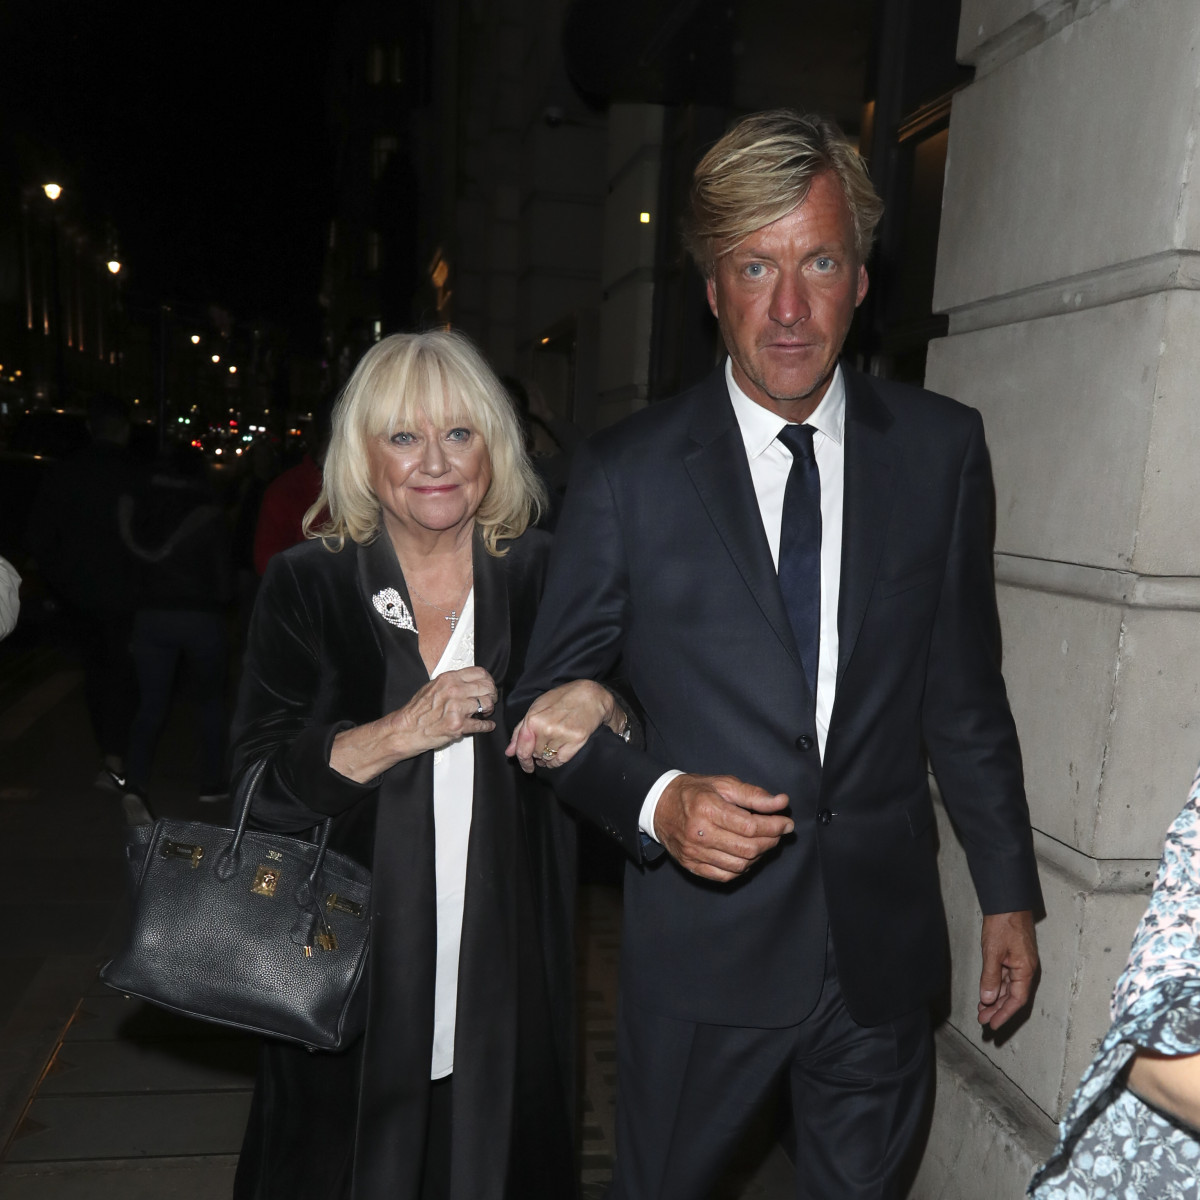 Richard Madeley And Judy Finnigan Attend The This Morning 30th Anniversary Gala In London